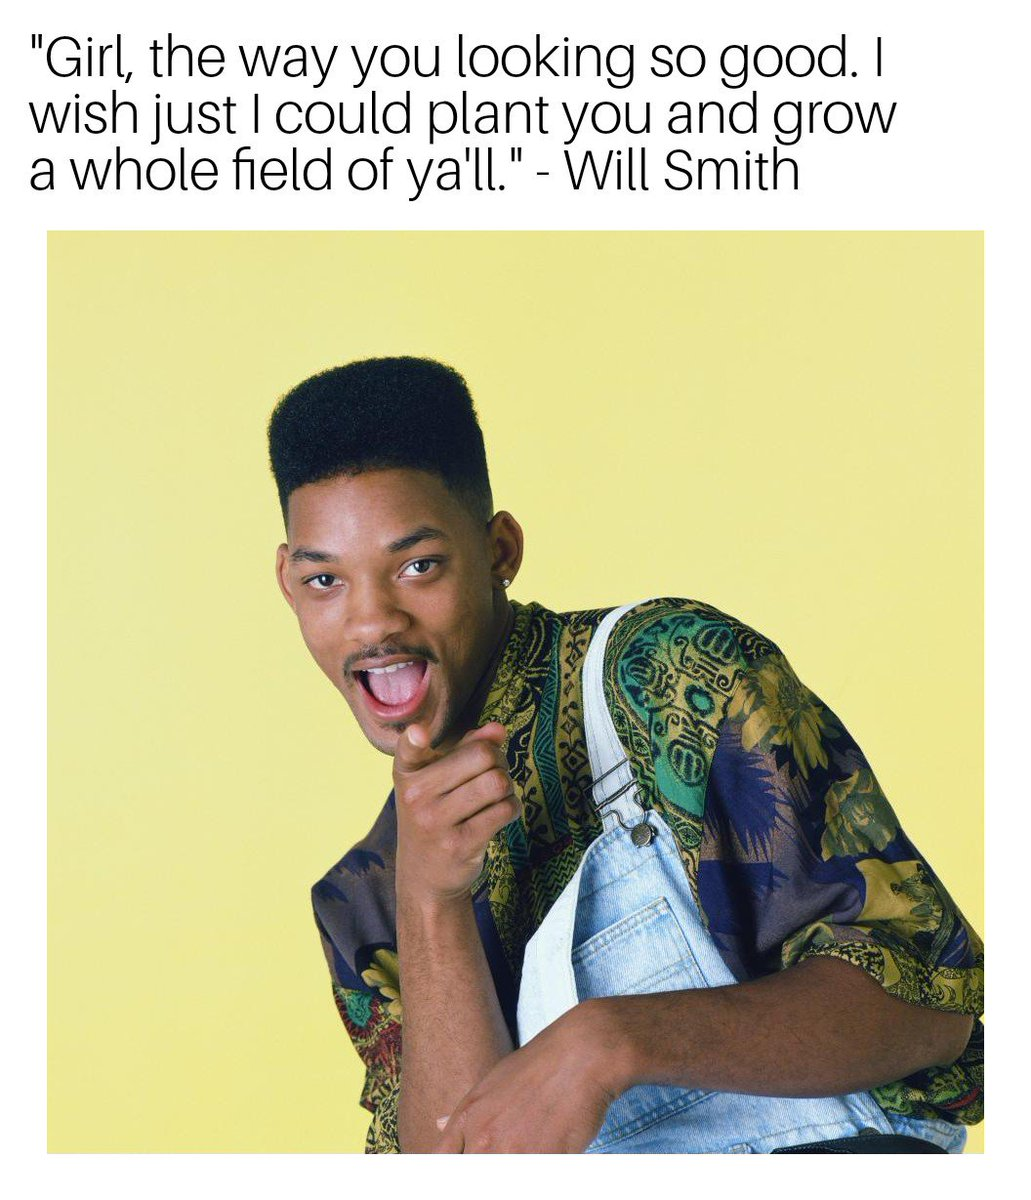 Lmao best way to pic up a chick #freshprinceofbelair #WillSmith https://t.co/3MS8Ka7CMt